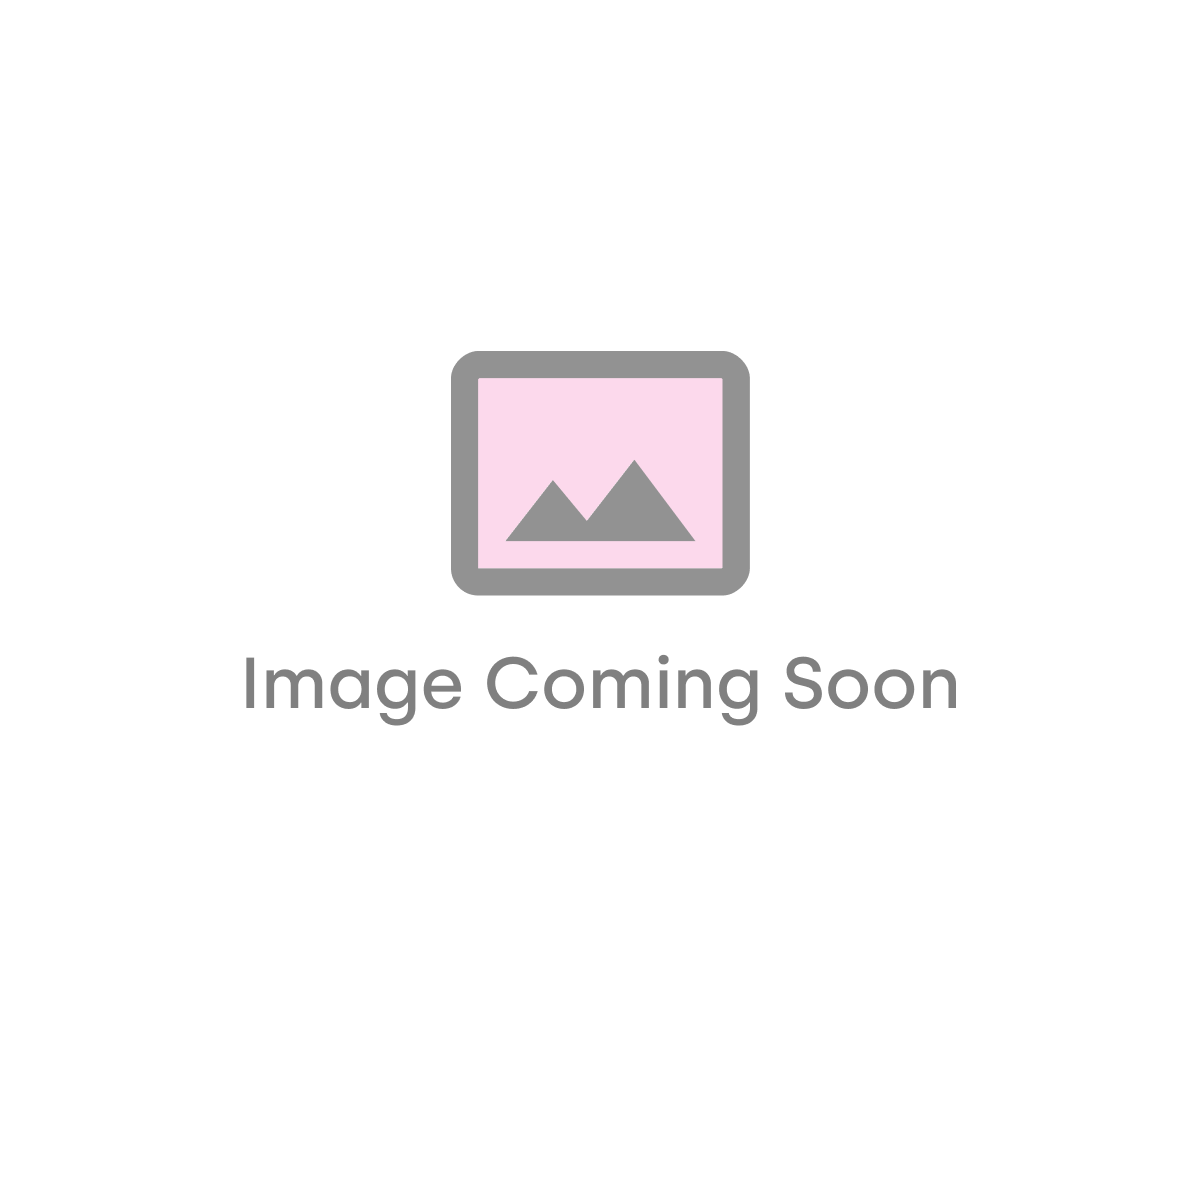 Alberto Cedarwood  22.5 x 90cm Wood Effect Floor Tile - 1.215sqm perbox (12579)